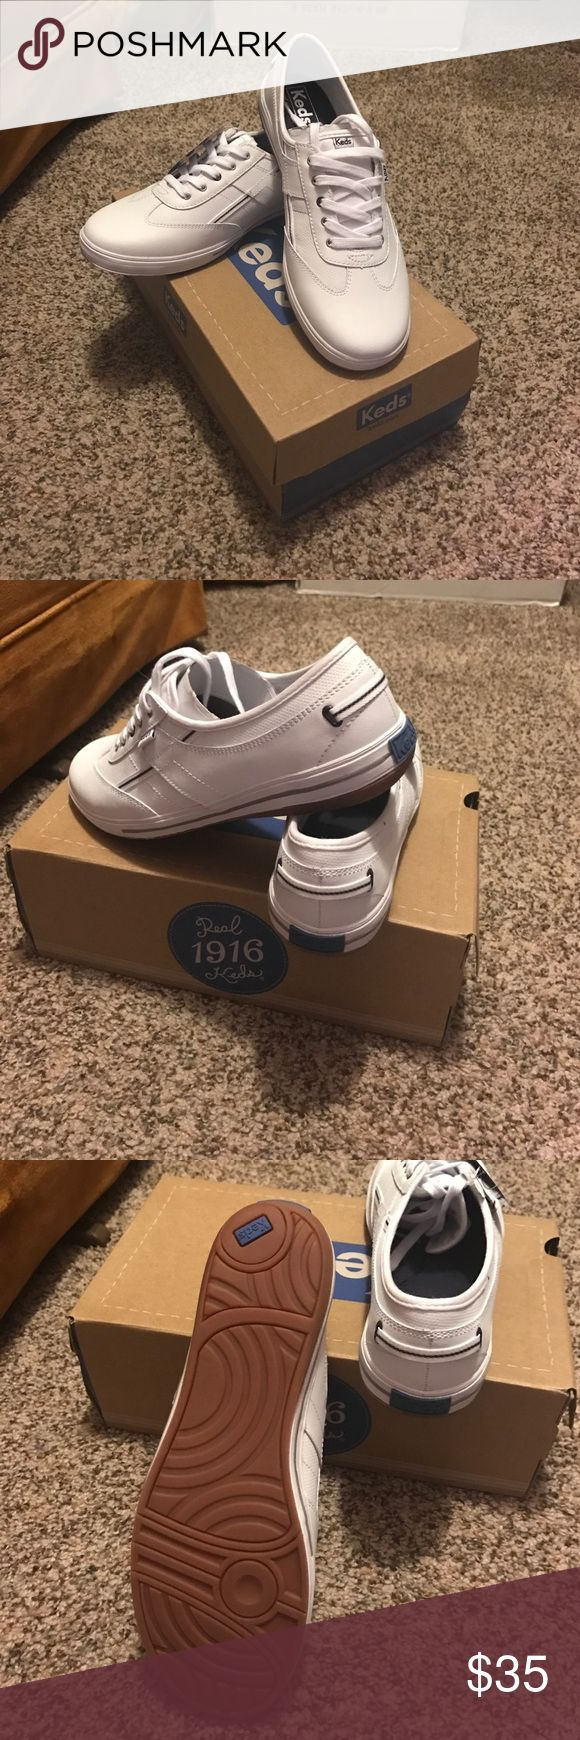 NWT Keds tennis shoes NWT less tennis shoes.Never worn obviously.Mom bought 2pairs 2different sizes and lost receipt for these.offers & trades welcome. Keds Shoes Flats & Loafers